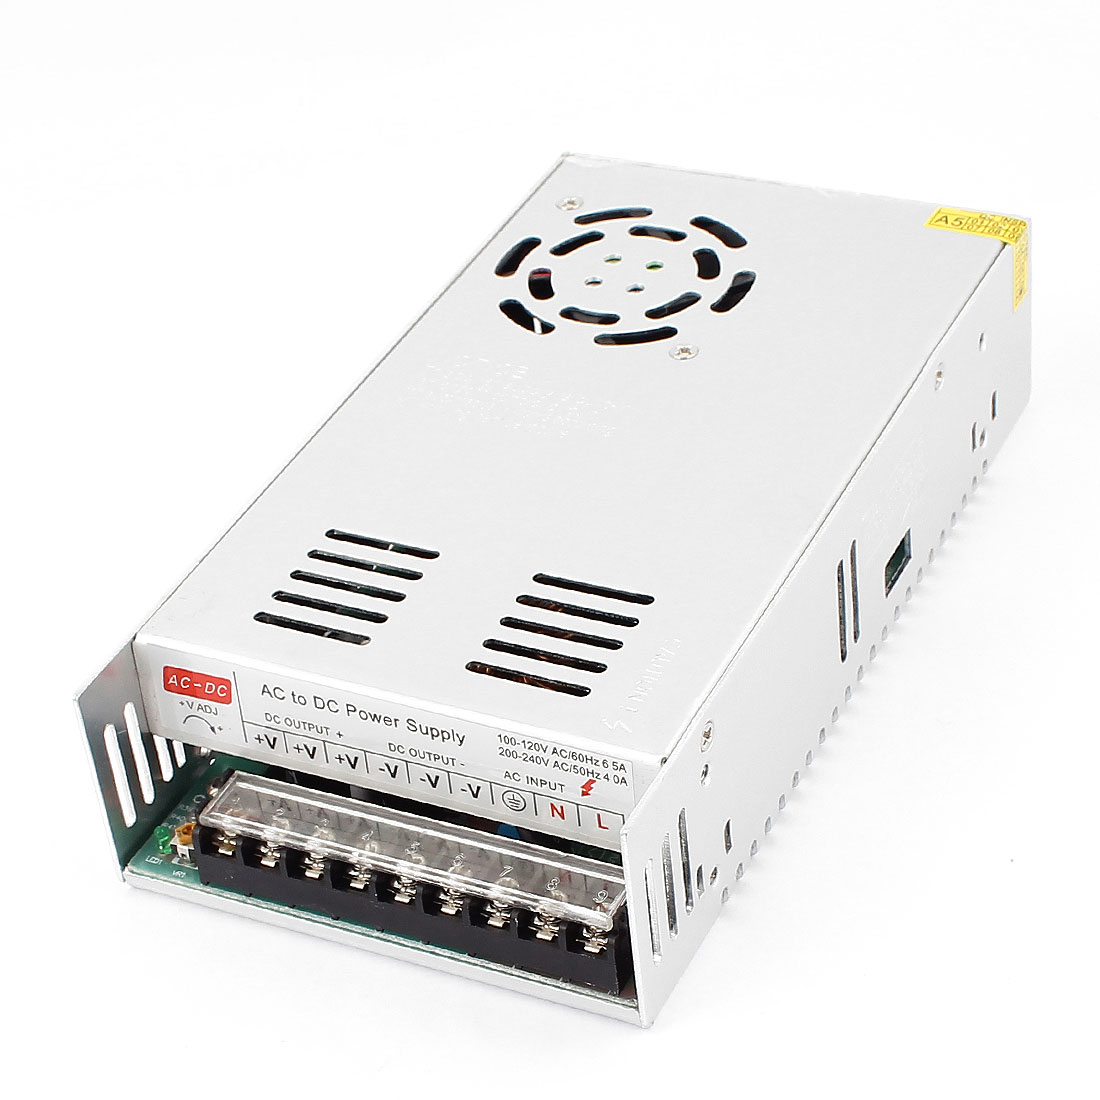 DMiotech DC 24V 15A 360W 9 Terminals Power Supply Switching Converter for LED Strip Light